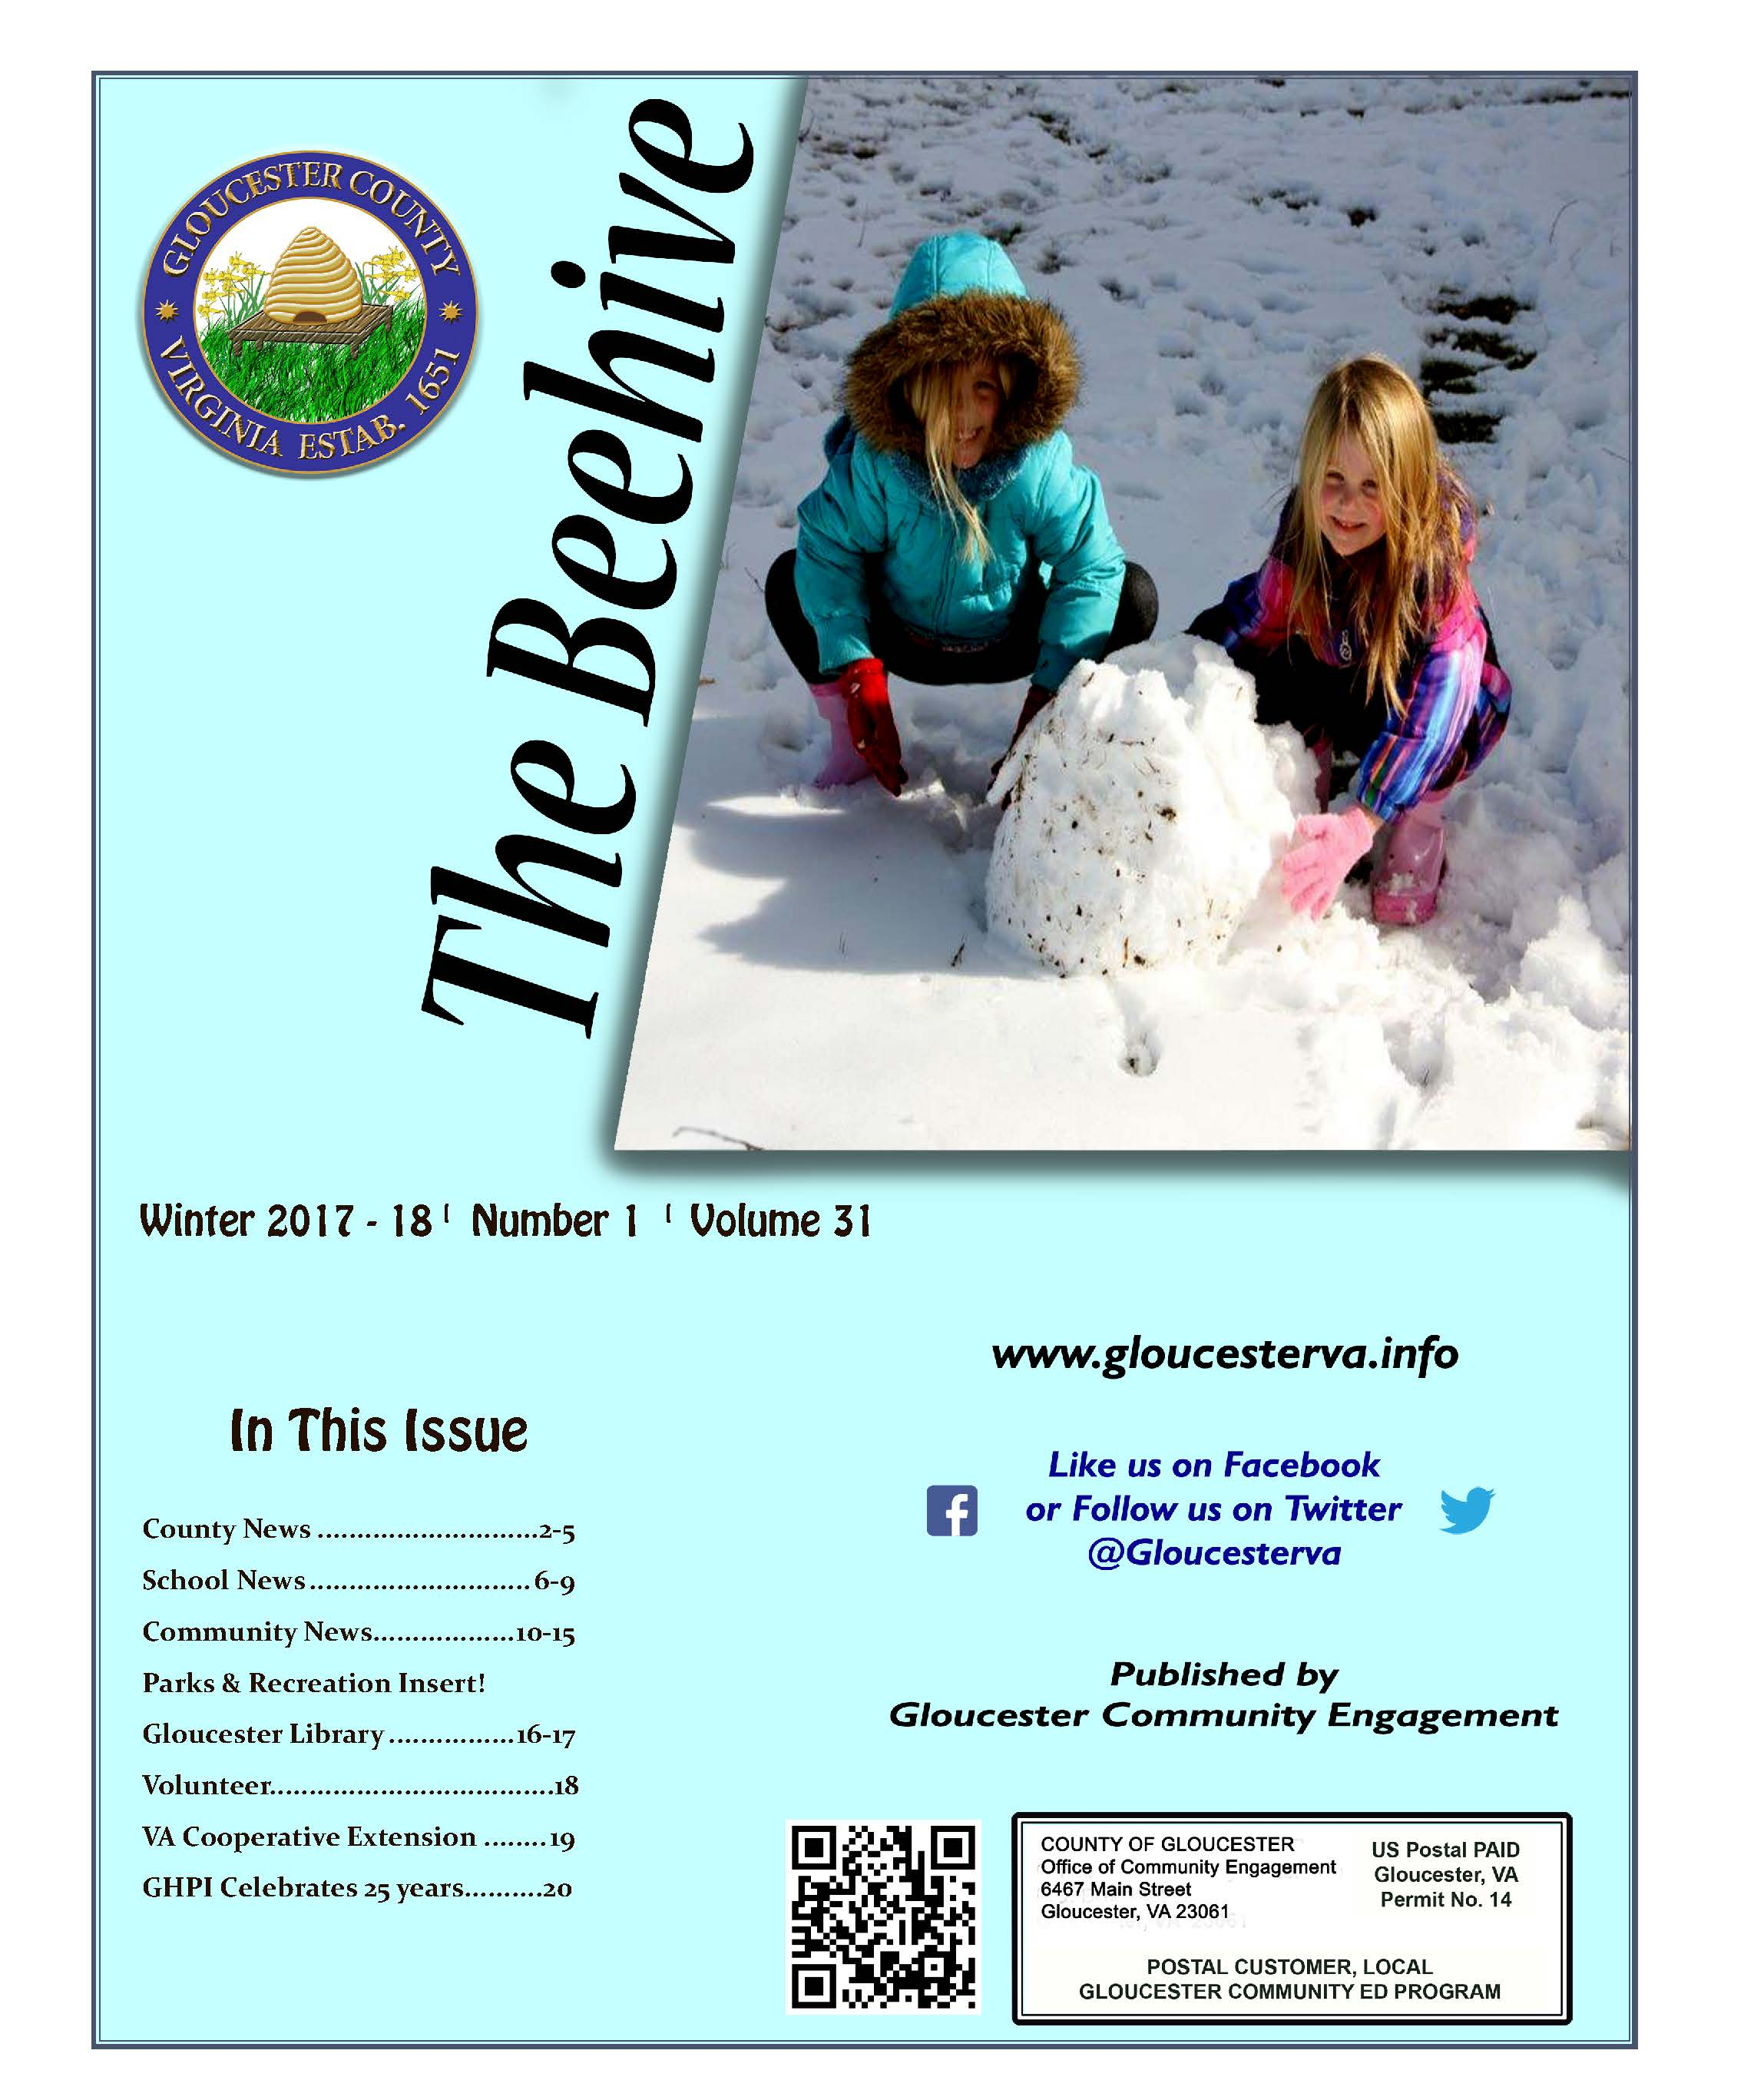 Beehive Winter 2017 cover of kids playing in the snow